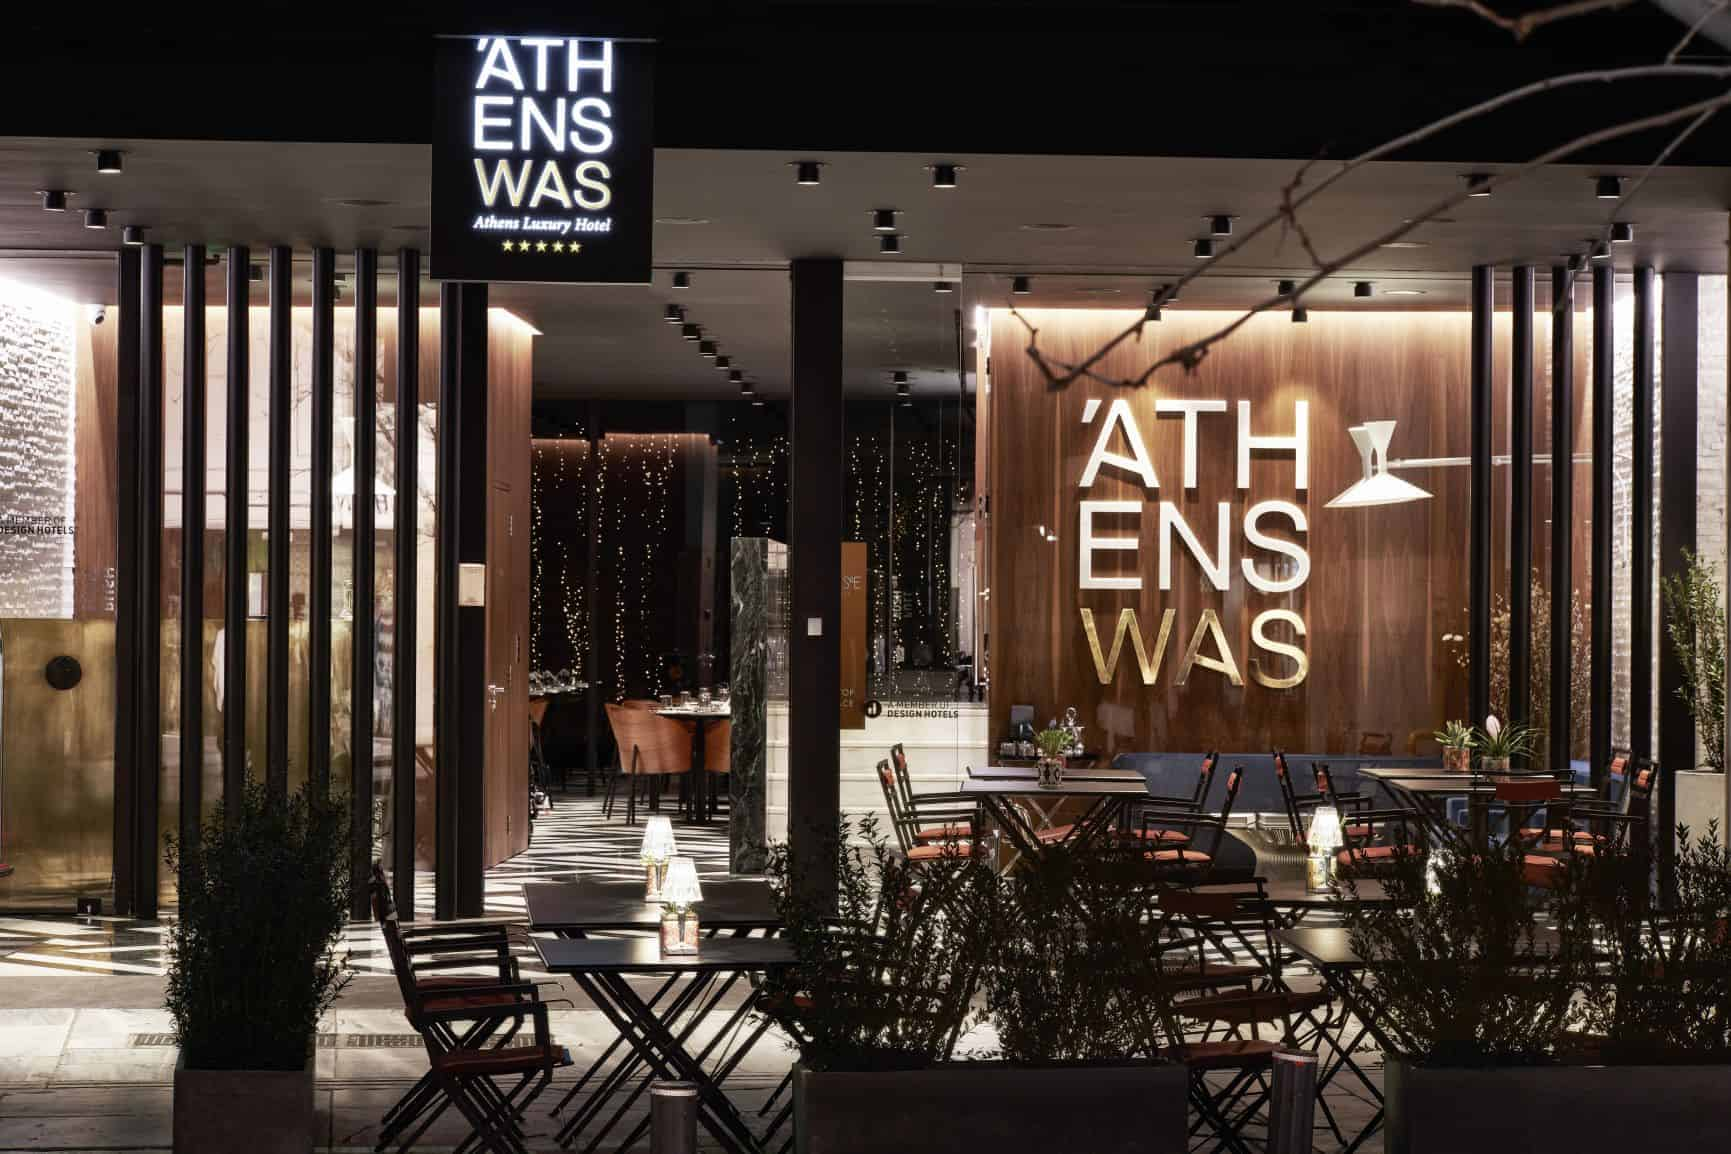 AthensWas is one of the most beloved luxury hotels in Athens